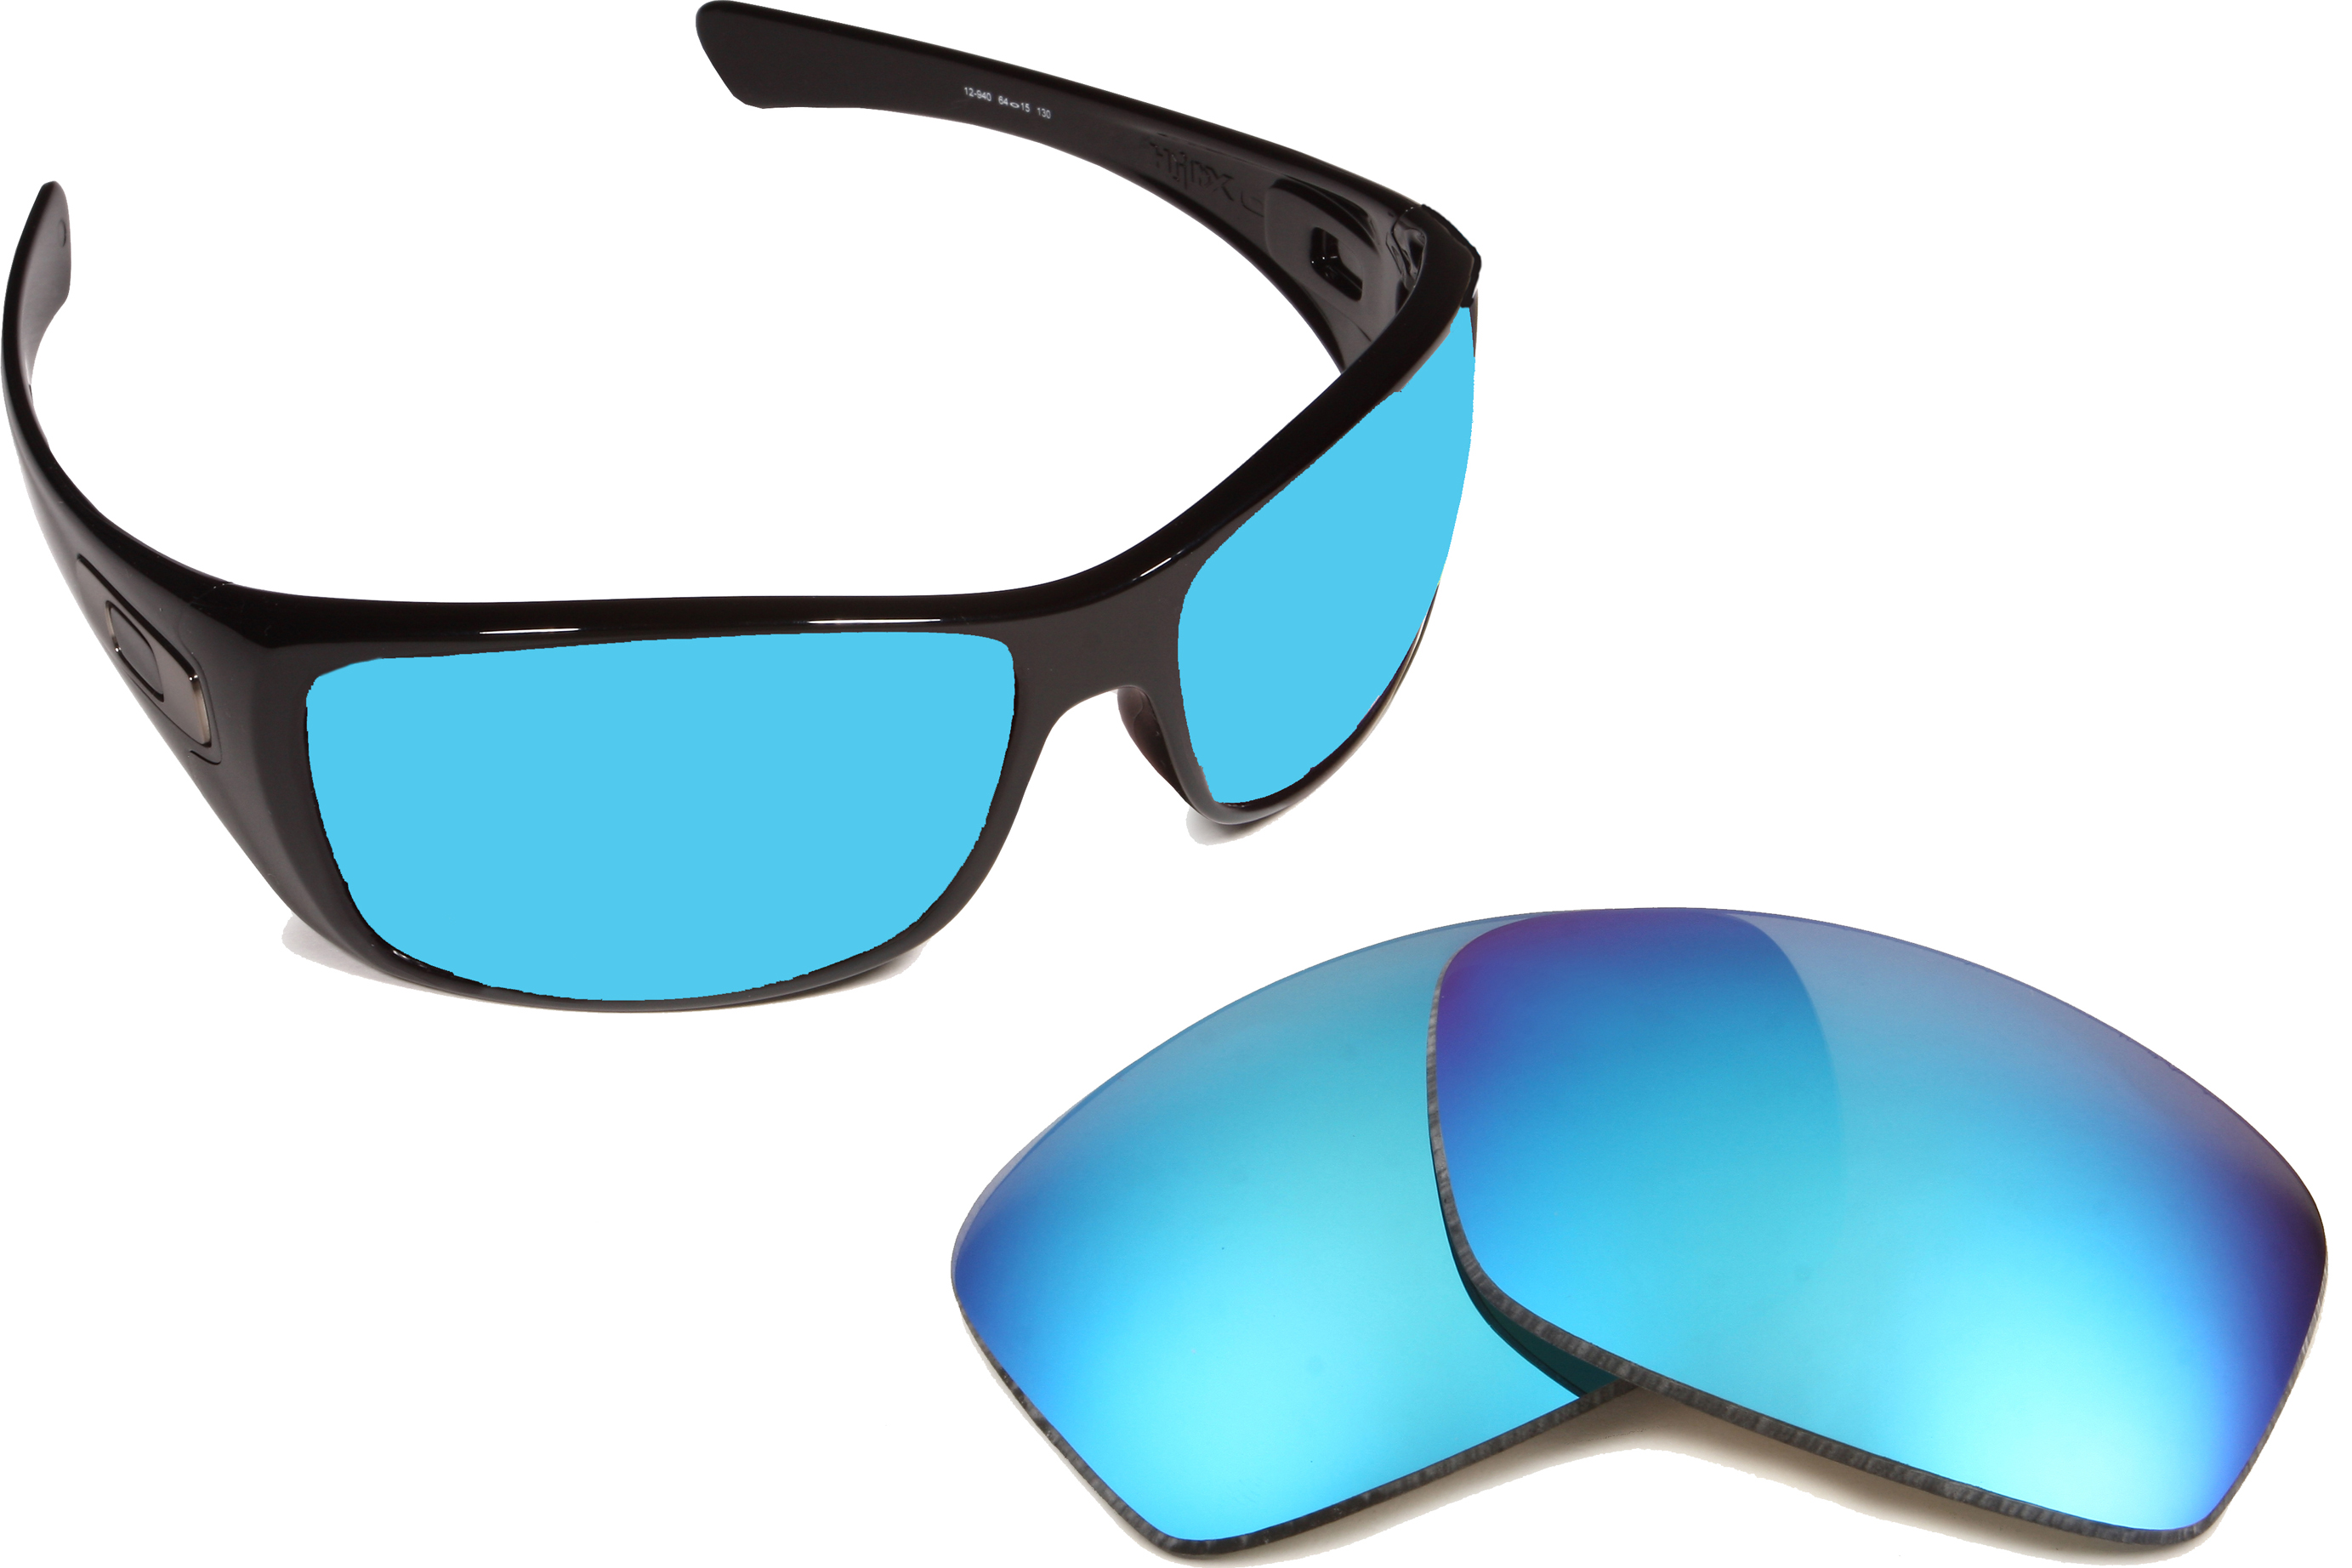 650502b1e98 Hijinx Replacement Lenses Polarized Blue Mirror by SEEK fits OAKLEY  Sunglasses